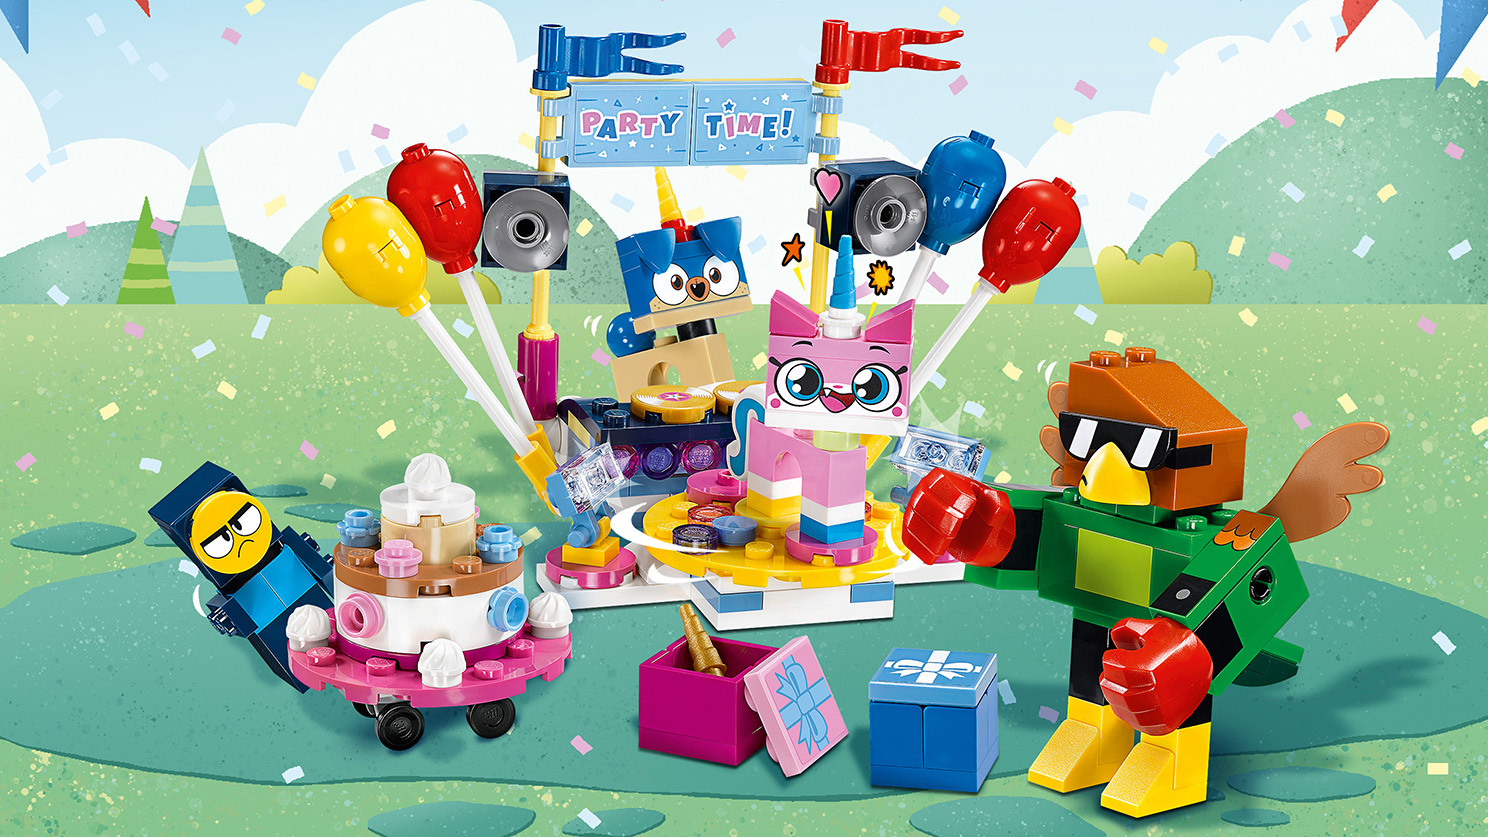 LEGO Unikitty - 41453 Party Time - It's party time in Unikingdom! Hit the dance floor with Unikitty and the gang while Prince Puppycorn handles the music from the DJ booth.